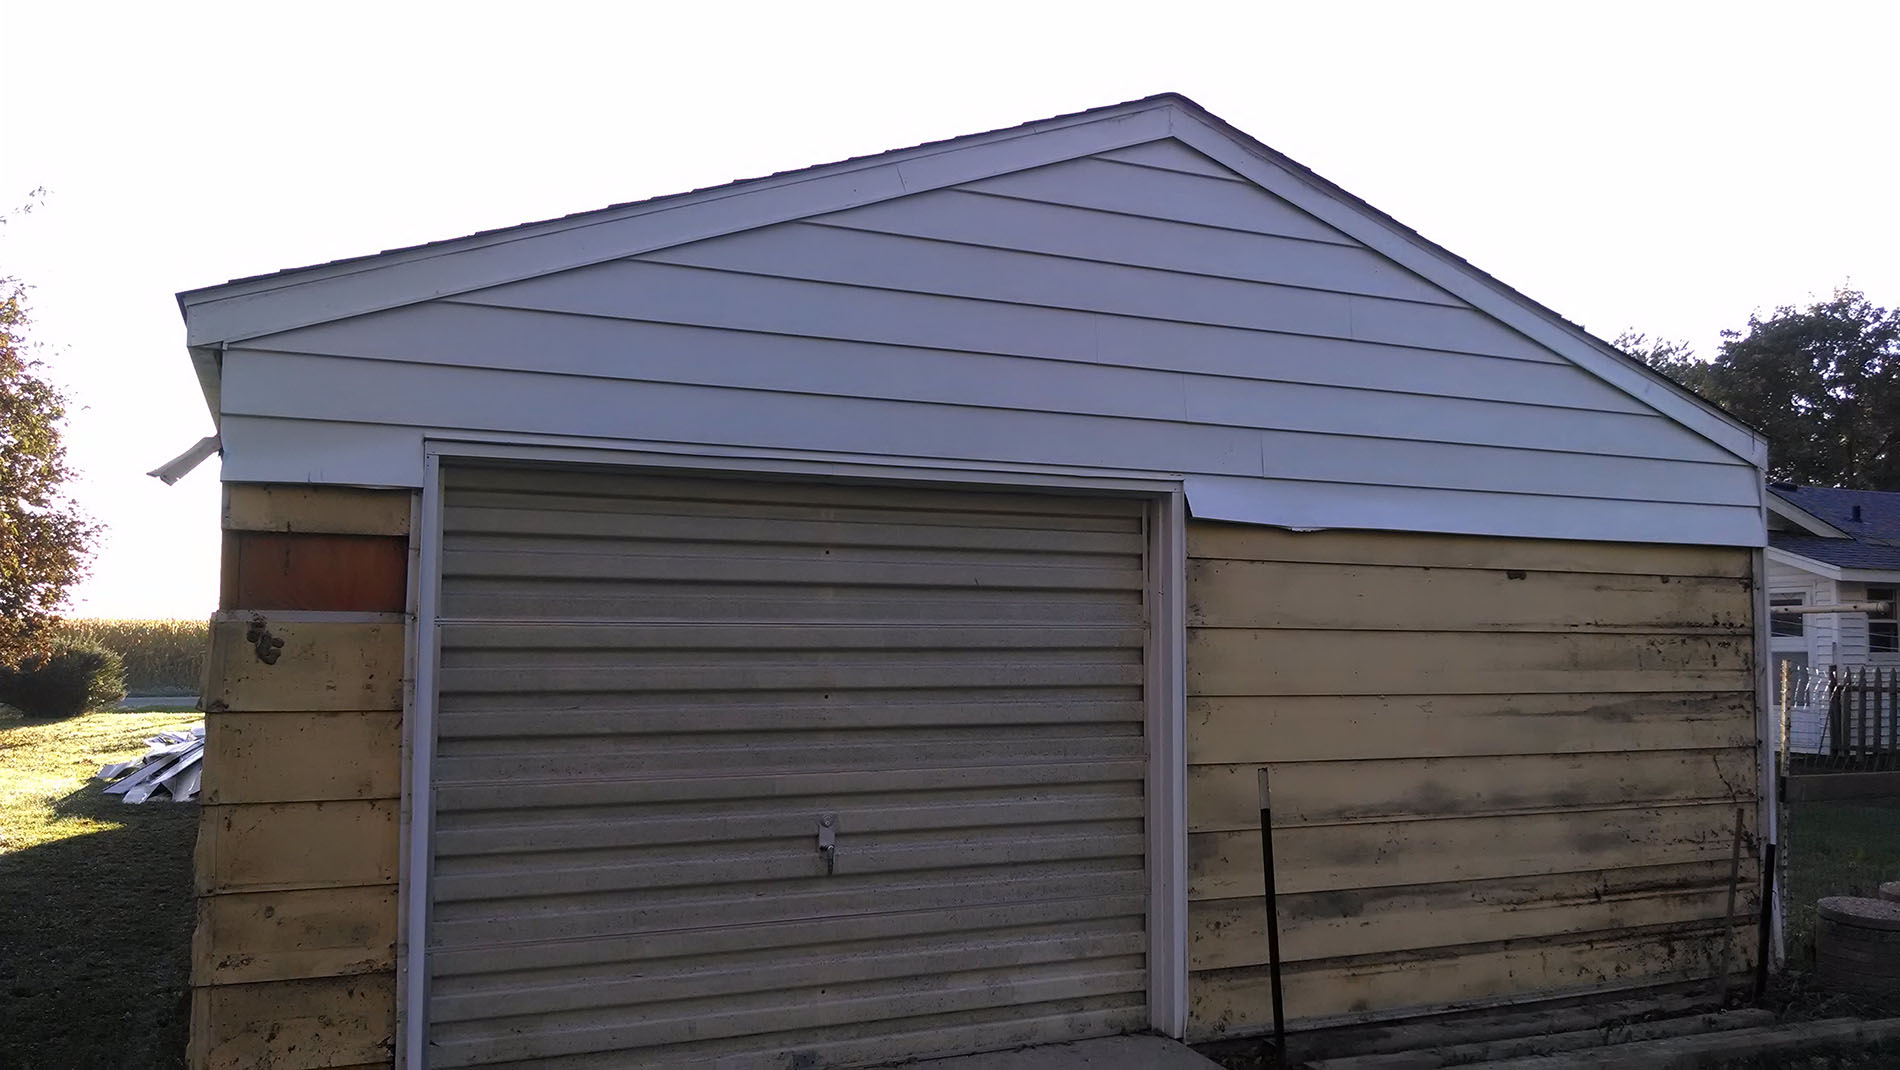 Exterior Siding Removal (in progress, alternate view) -